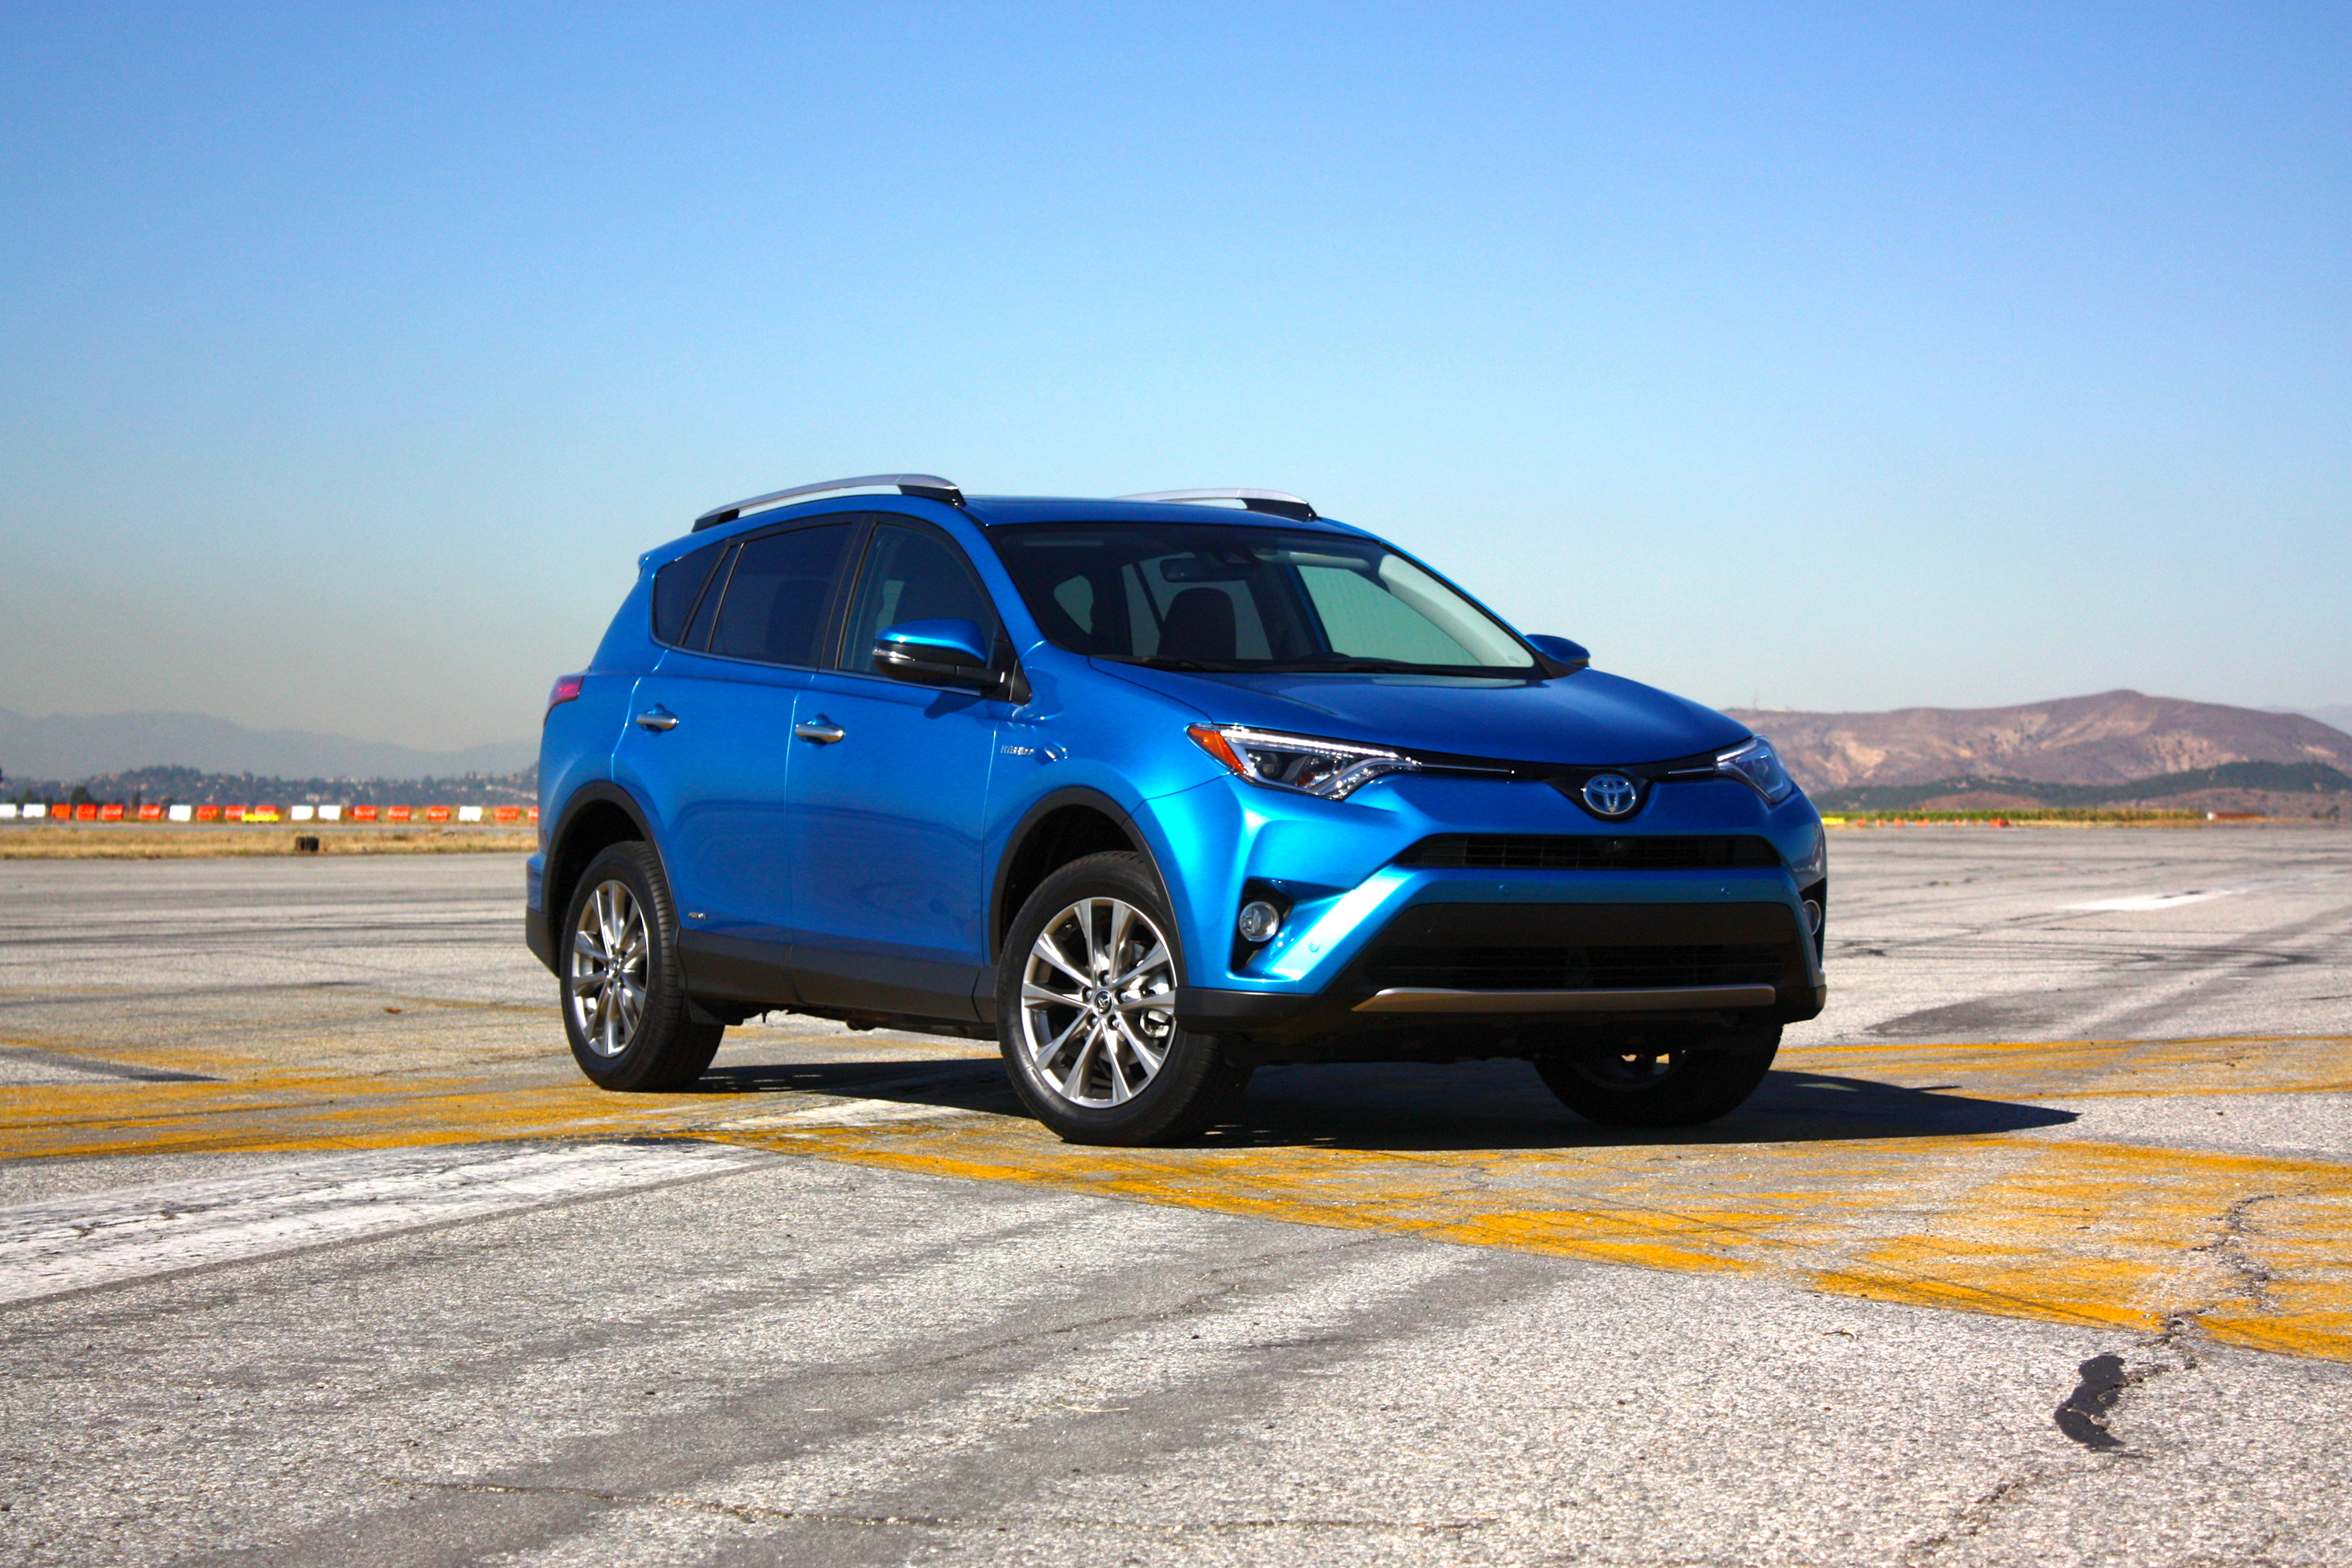 2016-2016-toyota-rav4-dri-11 Take A Look About Murano Vs Crv with Fascinating Pictures Cars Review